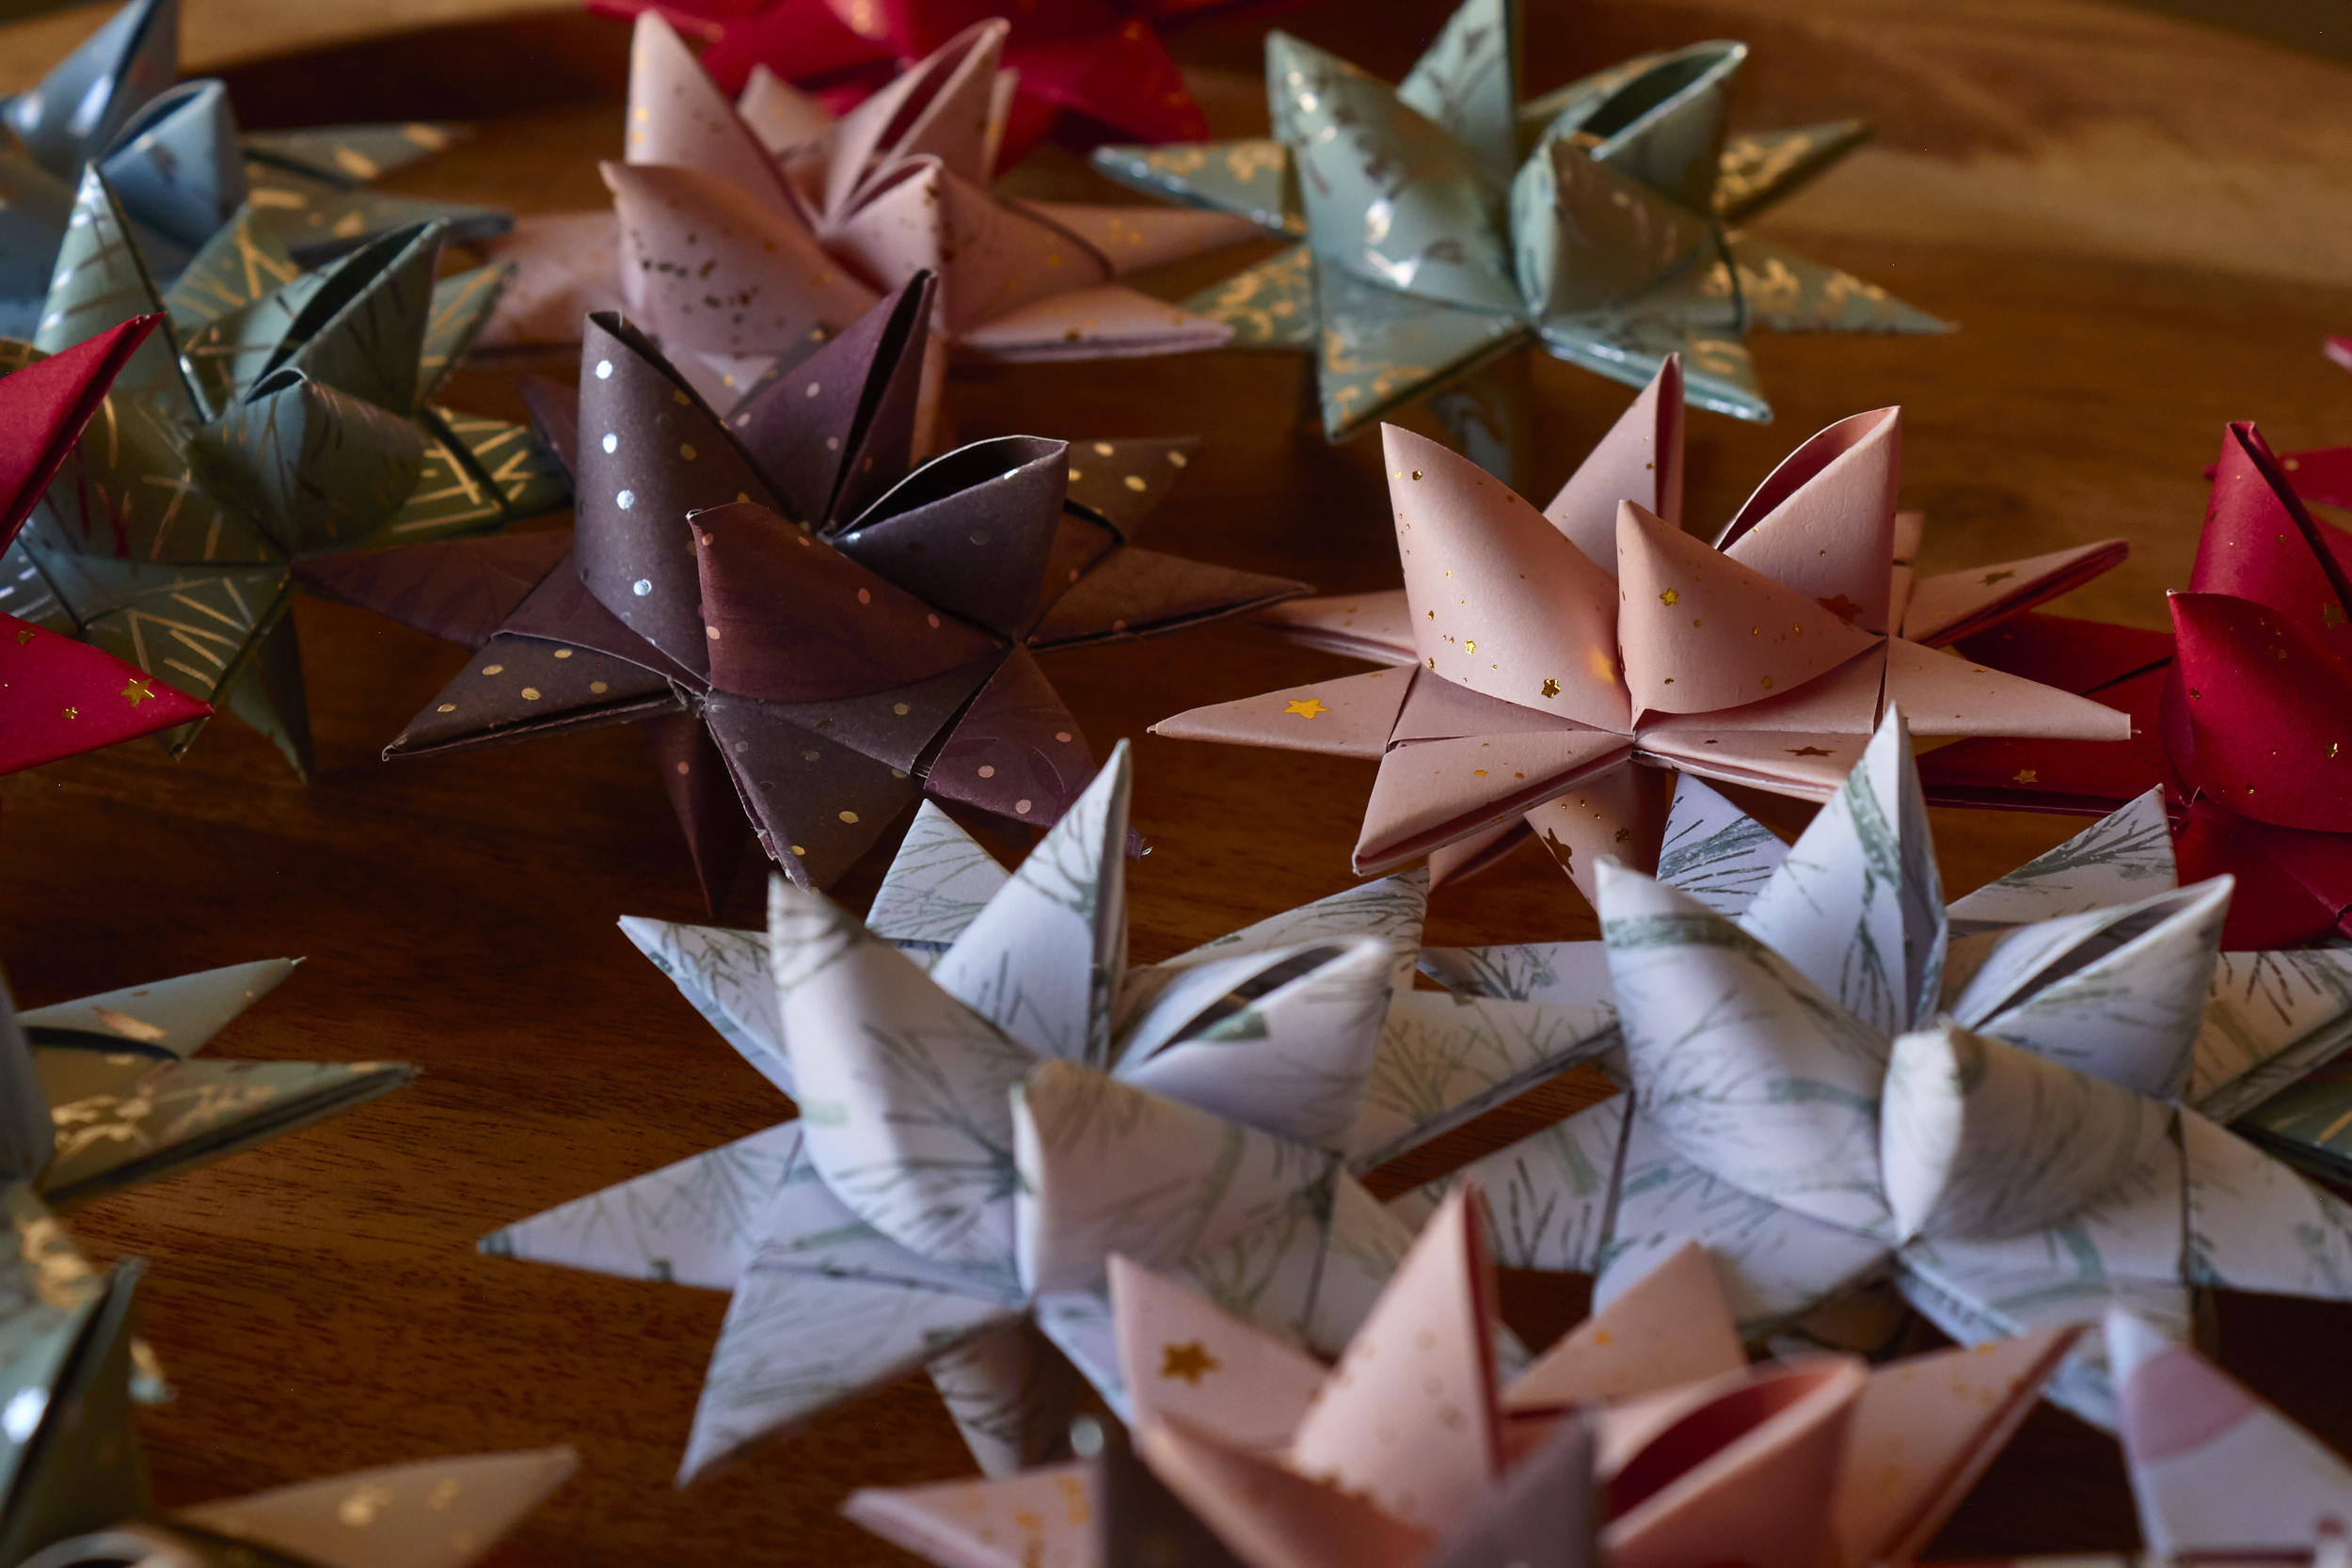 Paper Christmas Stars (Julestjerner) - getting creative with paper choices, you can use gift wrapping paper as strips for pretty prints | In Carina's Kitchen